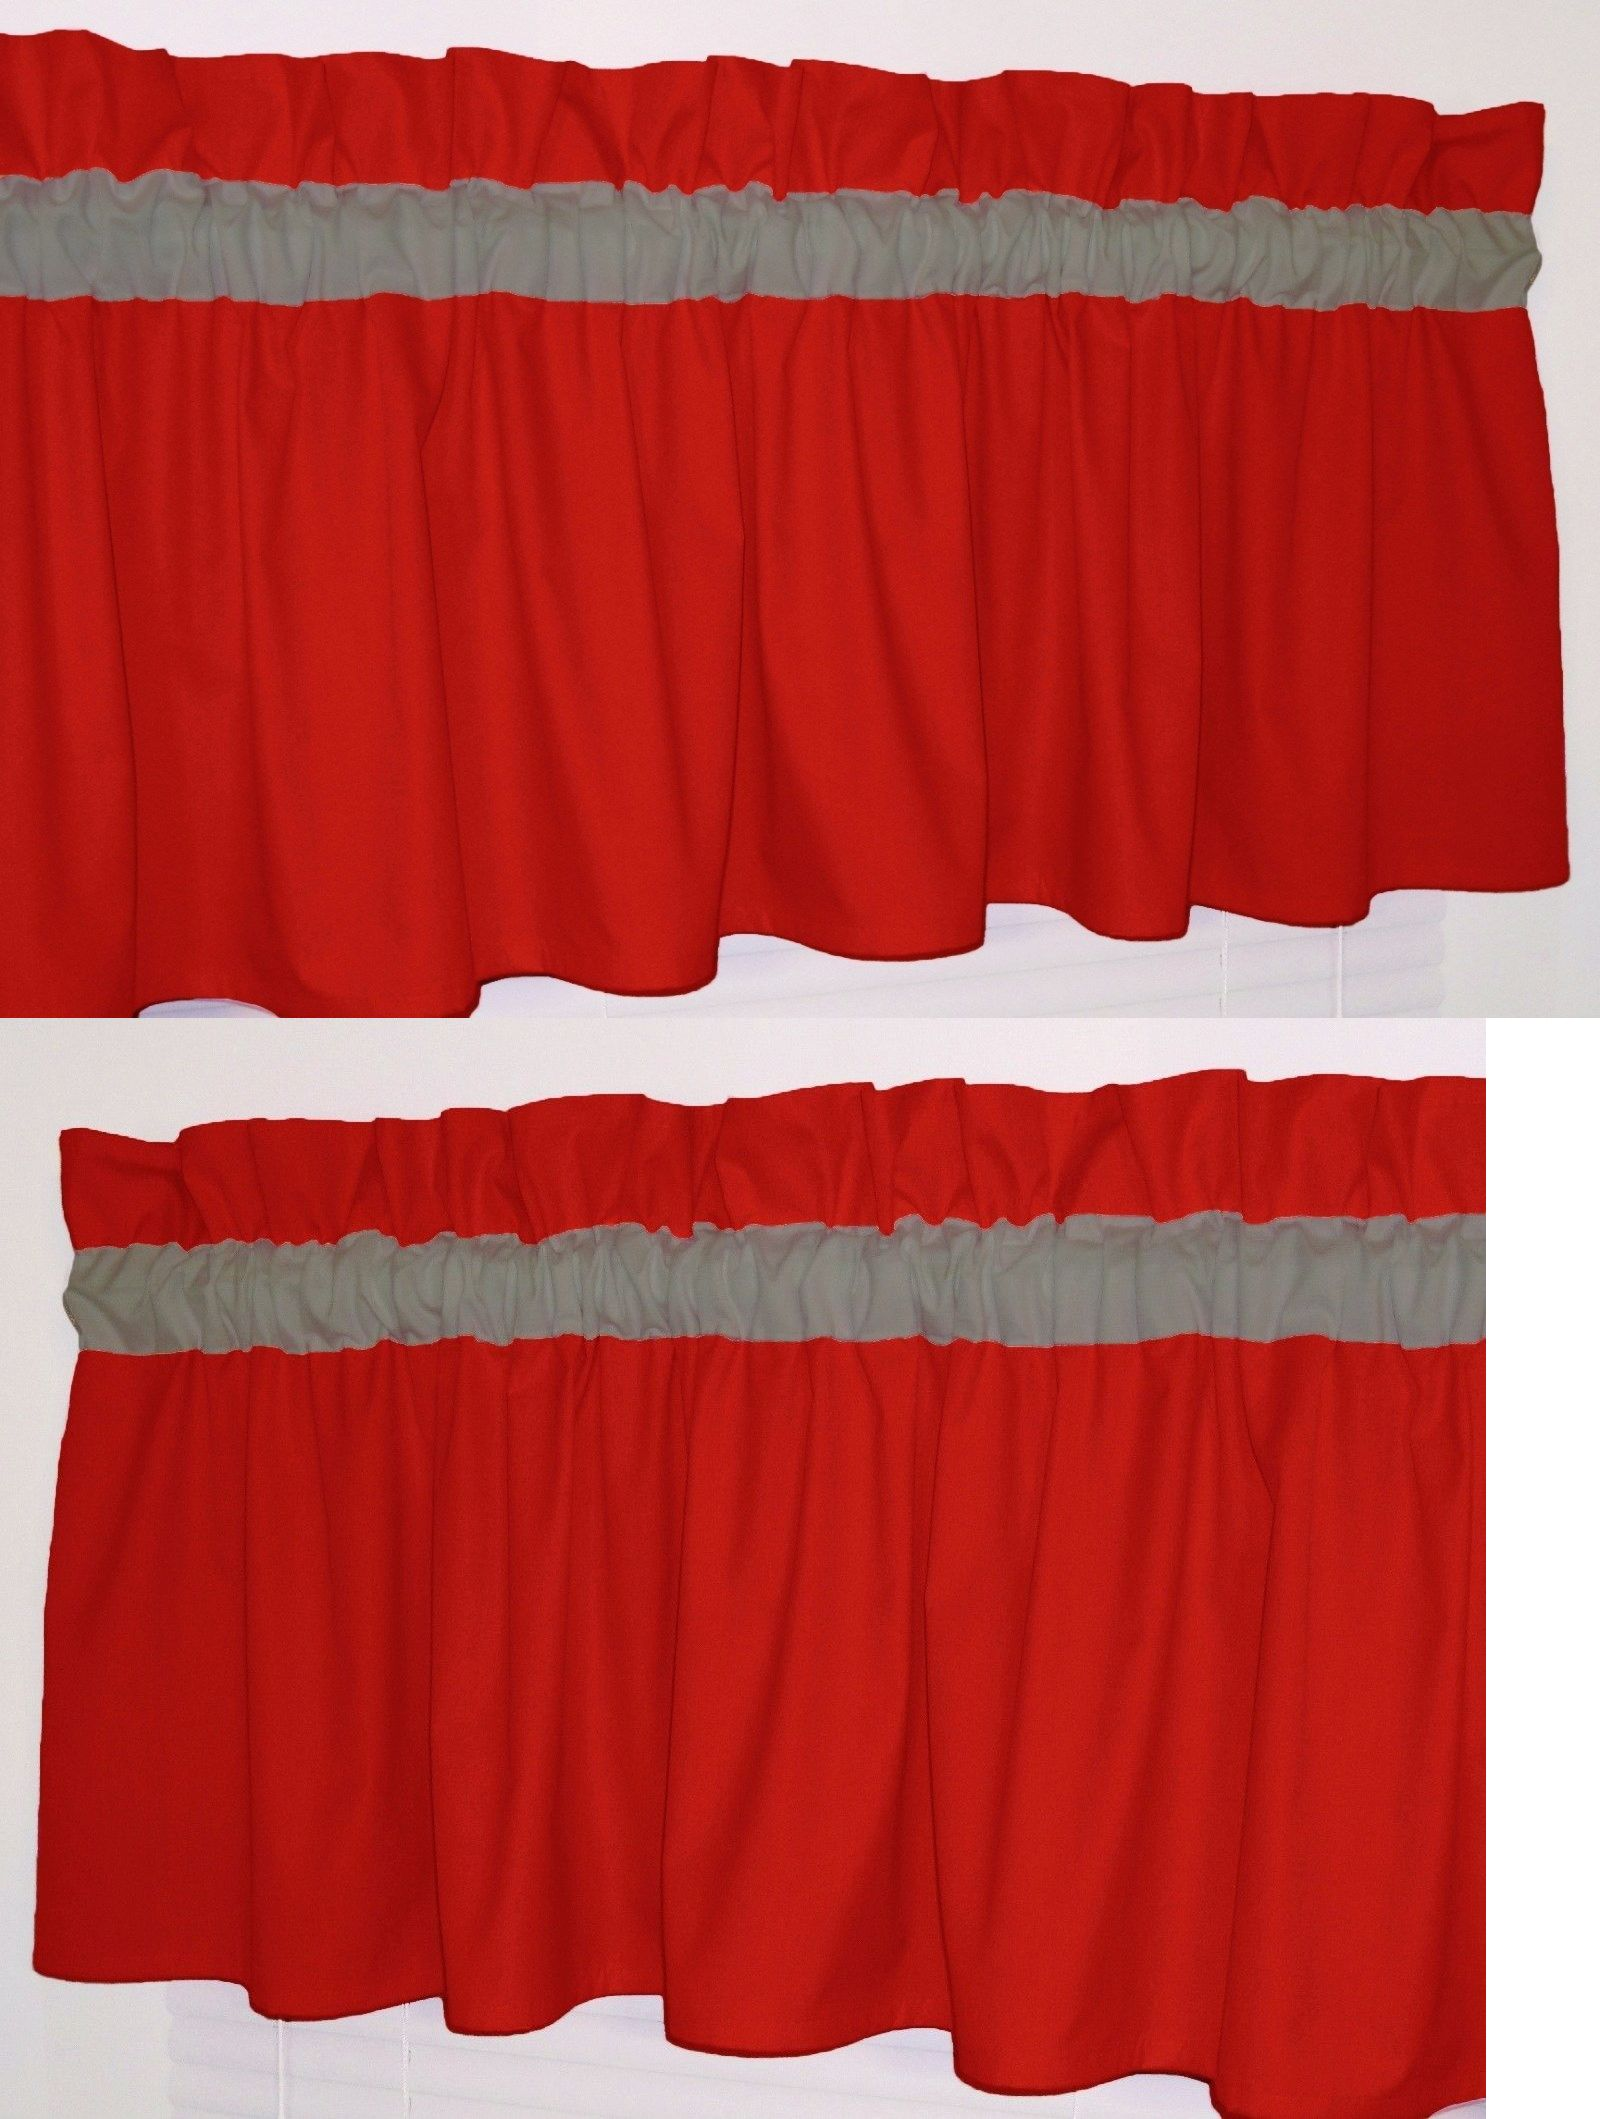 prodigious Solid Red Valances Part - 9: Window Treatments 20431: Solid Red And Gray Curtain Window Topper Valance  Kitchen School Bath Bedrooom -u003e BUY IT NOW ONLY: $12.99 on eBay!